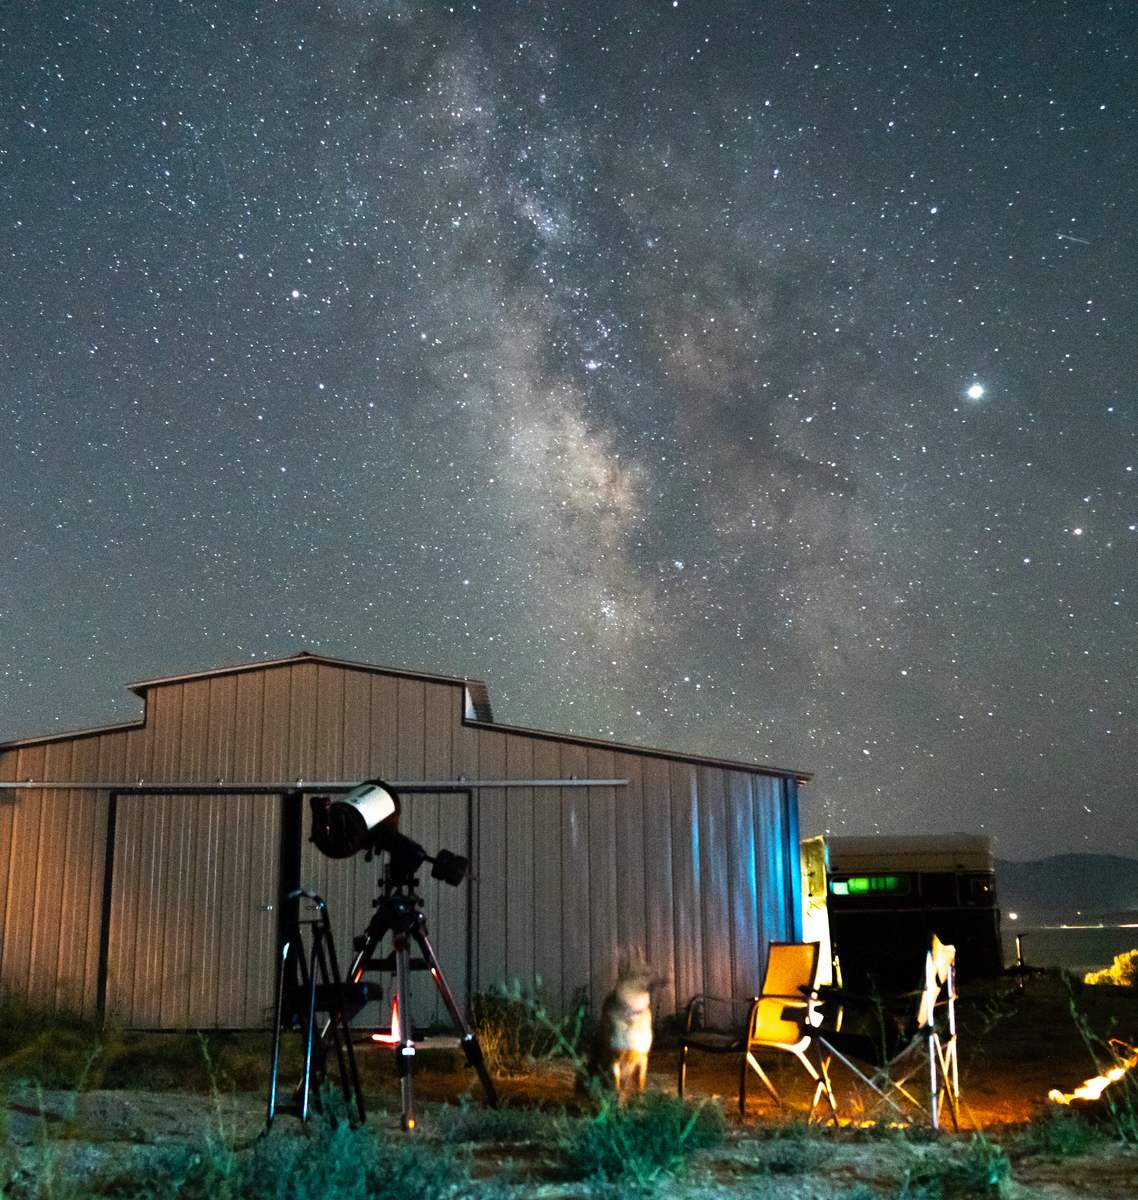 Astronomy under dark skies